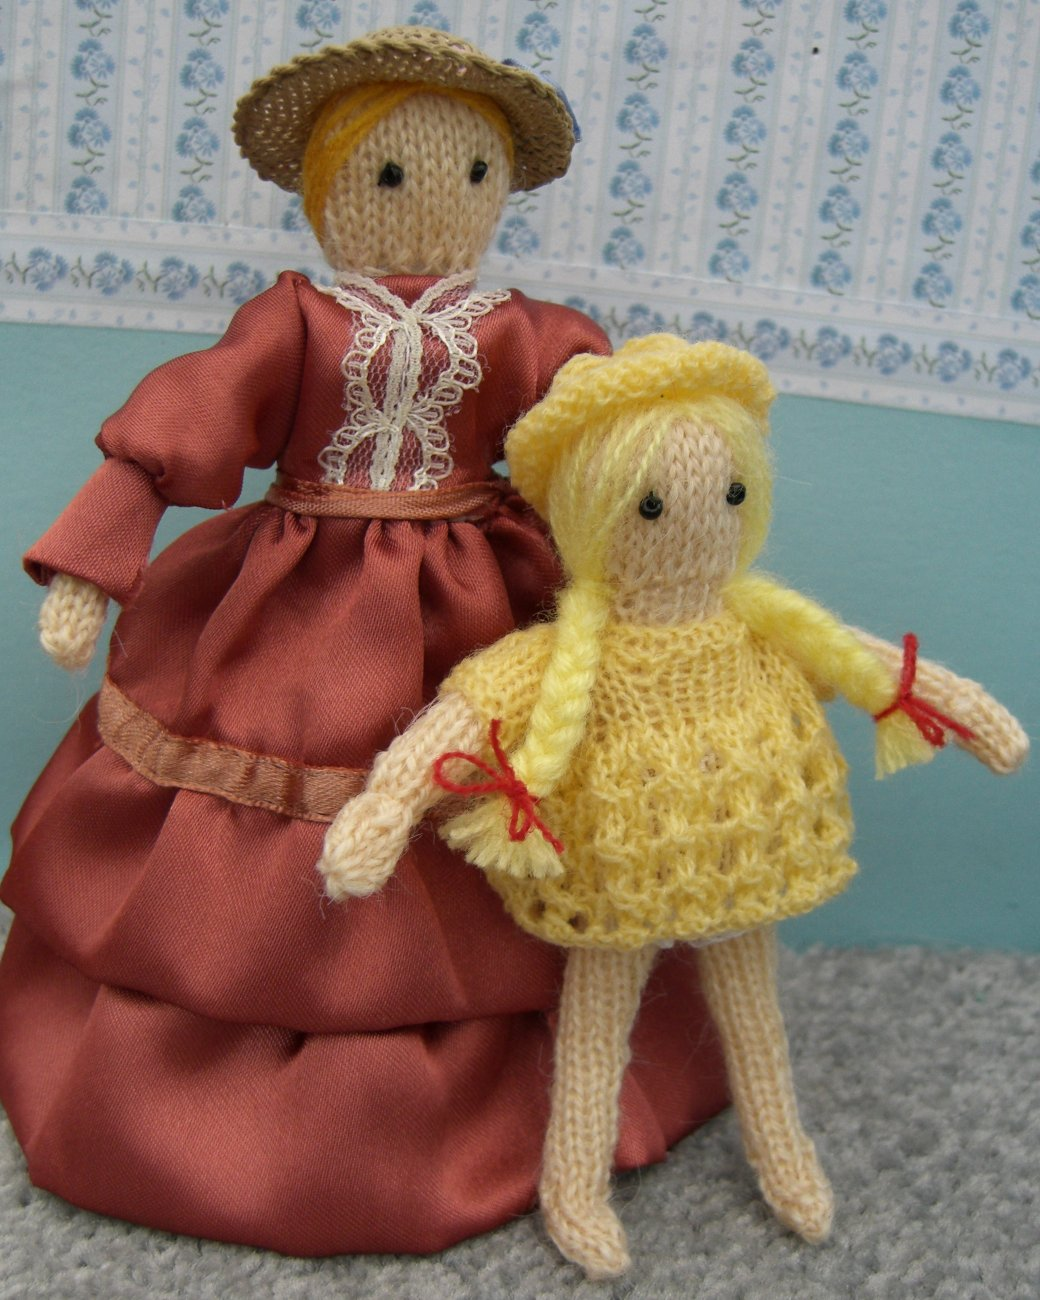 Free Knitted Doll Pattern : bitstobuy: Free miniature knitting pattern - Dolls house family part 2